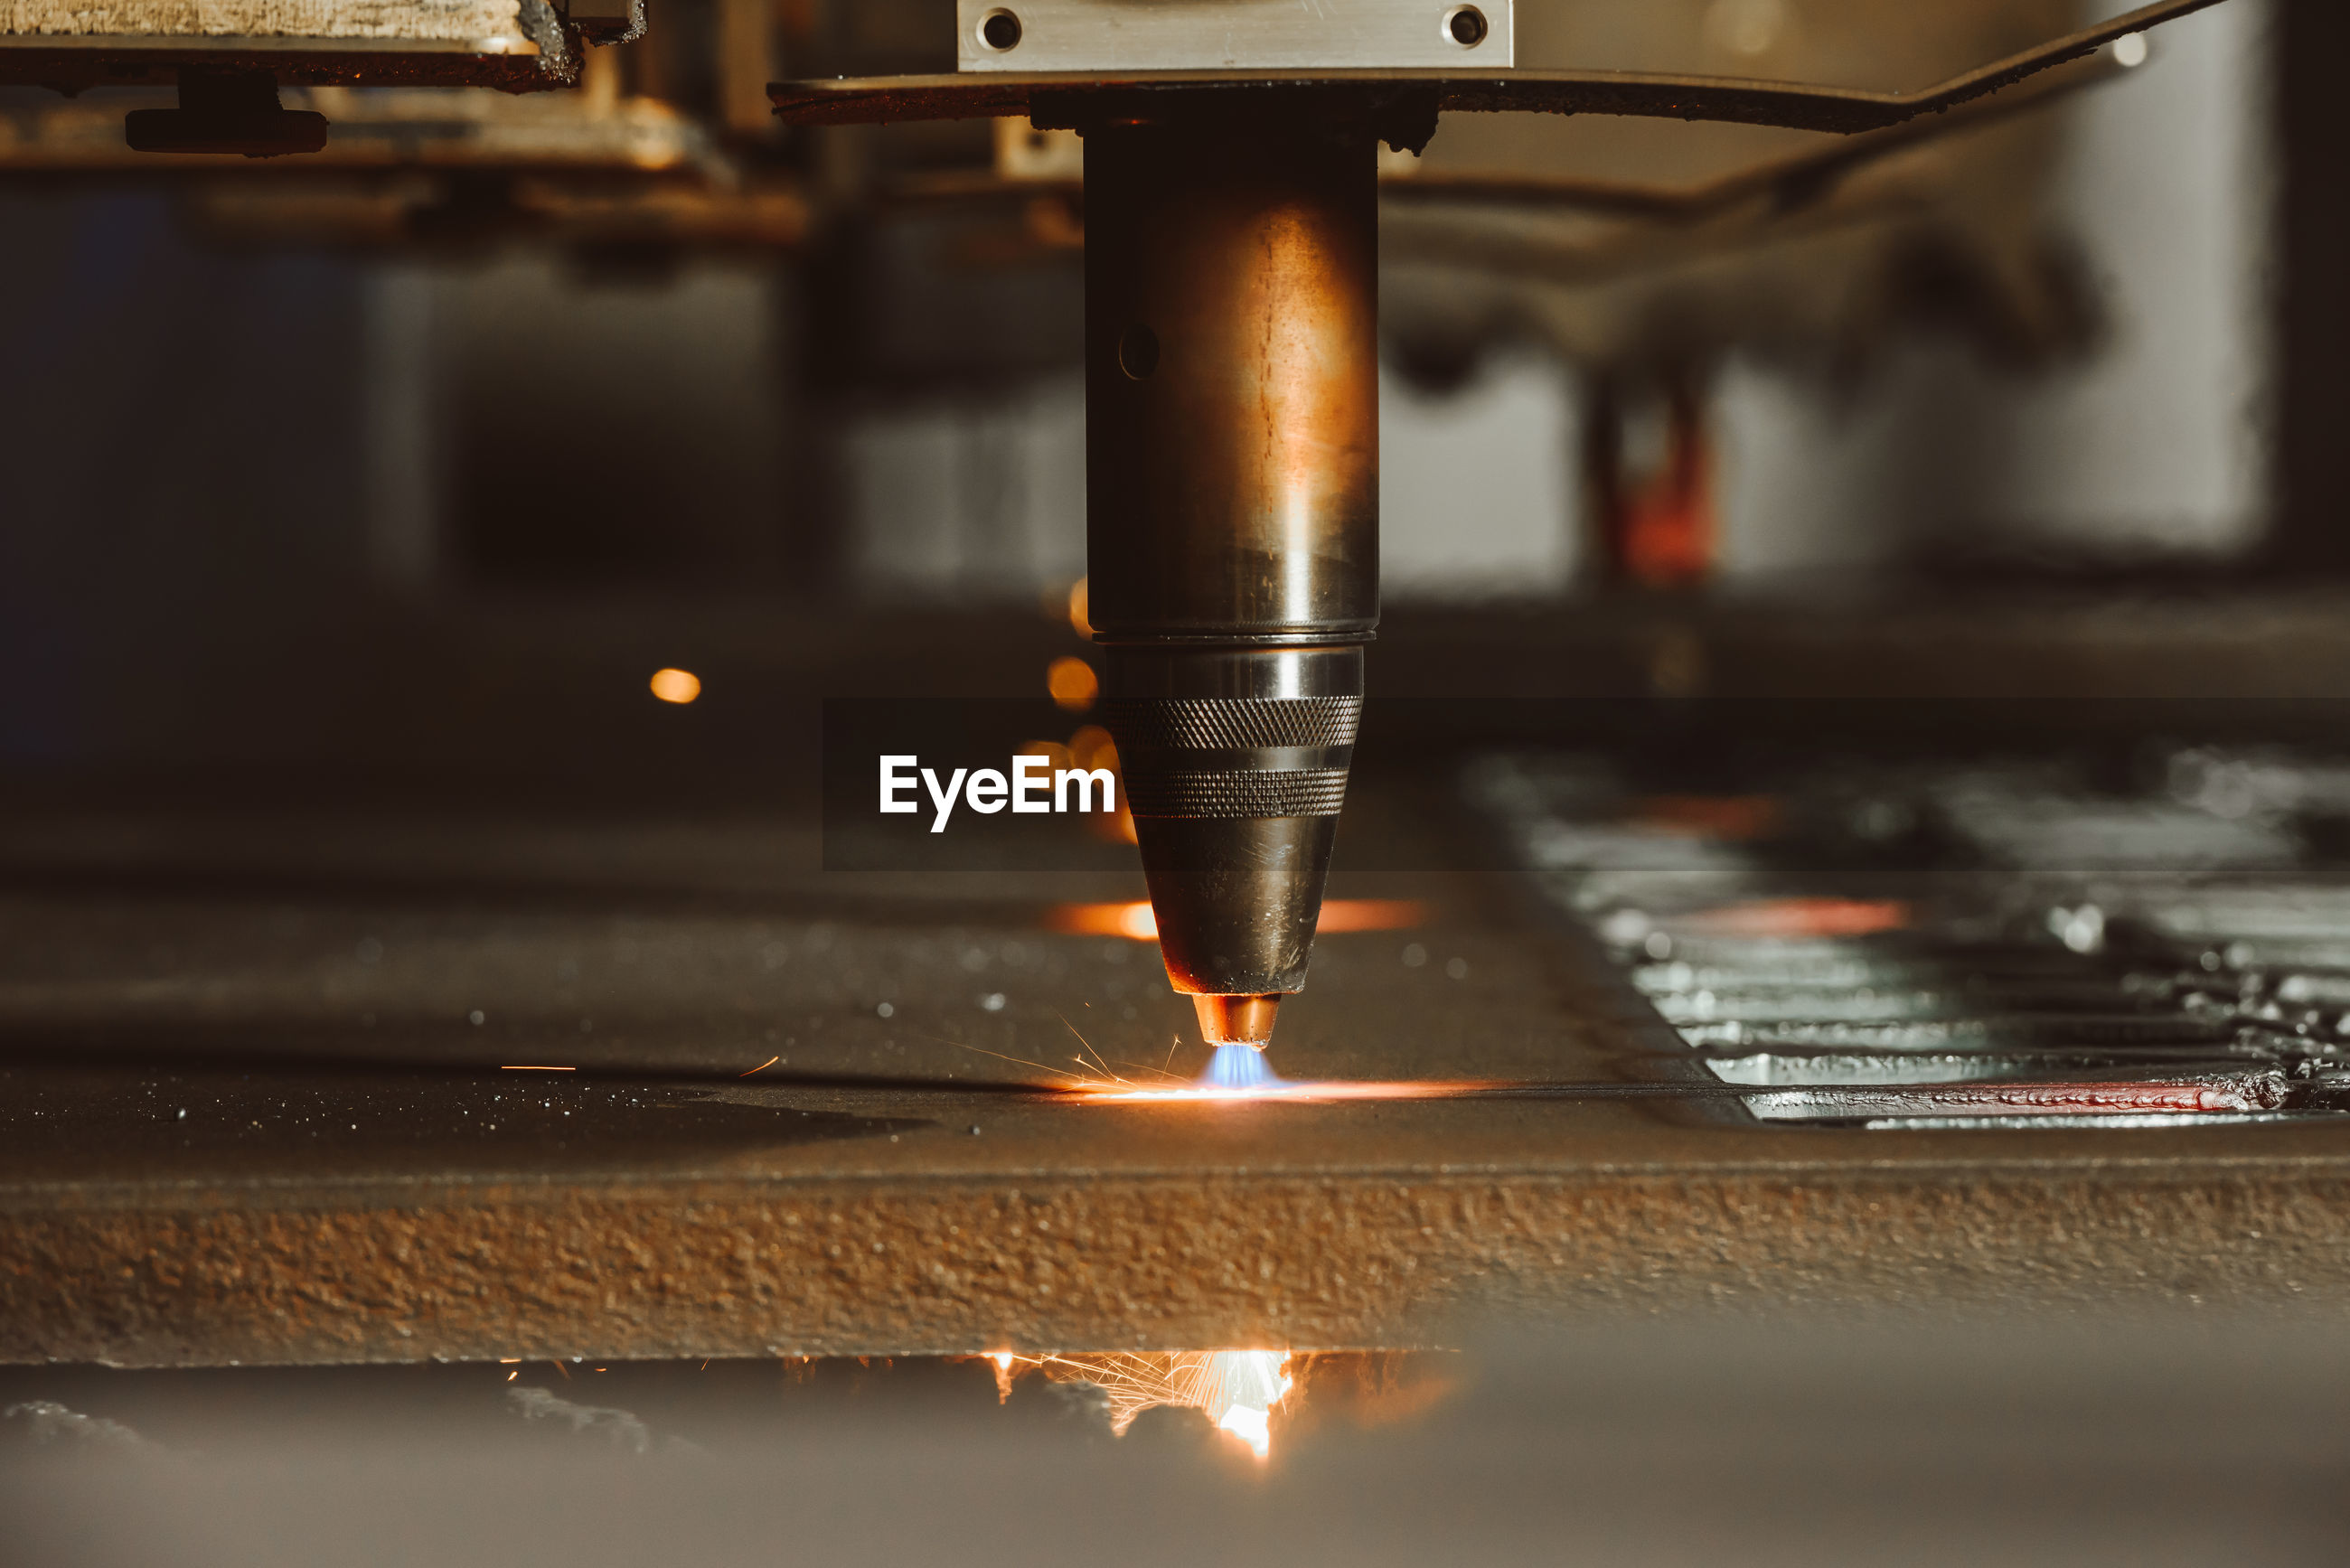 Close-up of manufacturing equipment at metal industry